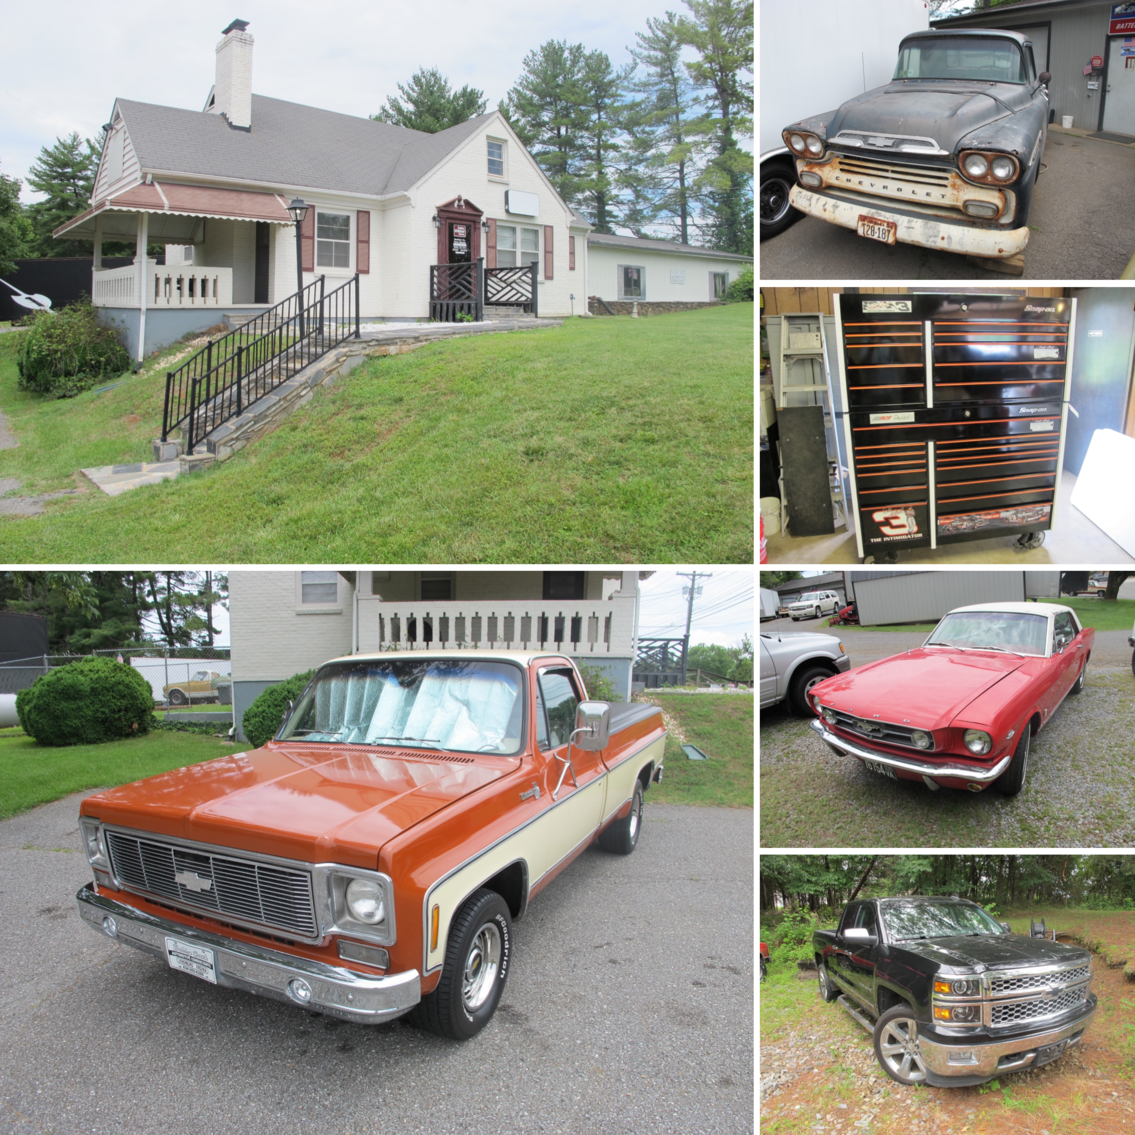 Image for ABSOLUTE AUCTION: Real Estate, Automobiles, Tools & Accessories